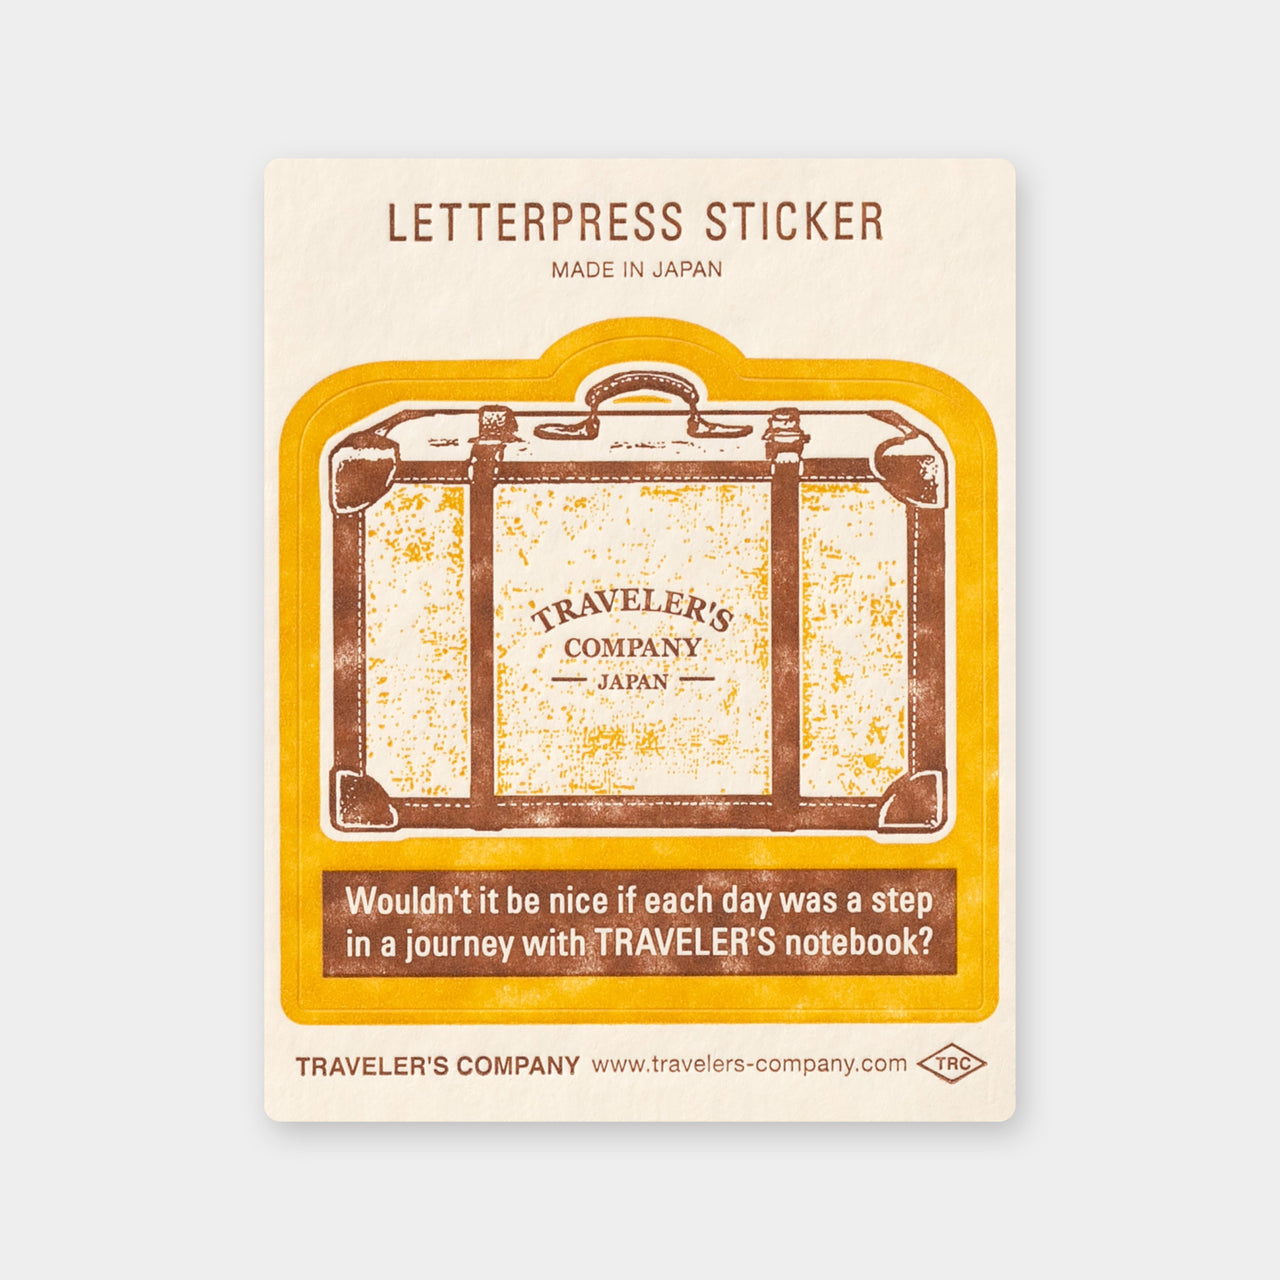 TF Letterpress Sticker Yellow FO - The Outsiders